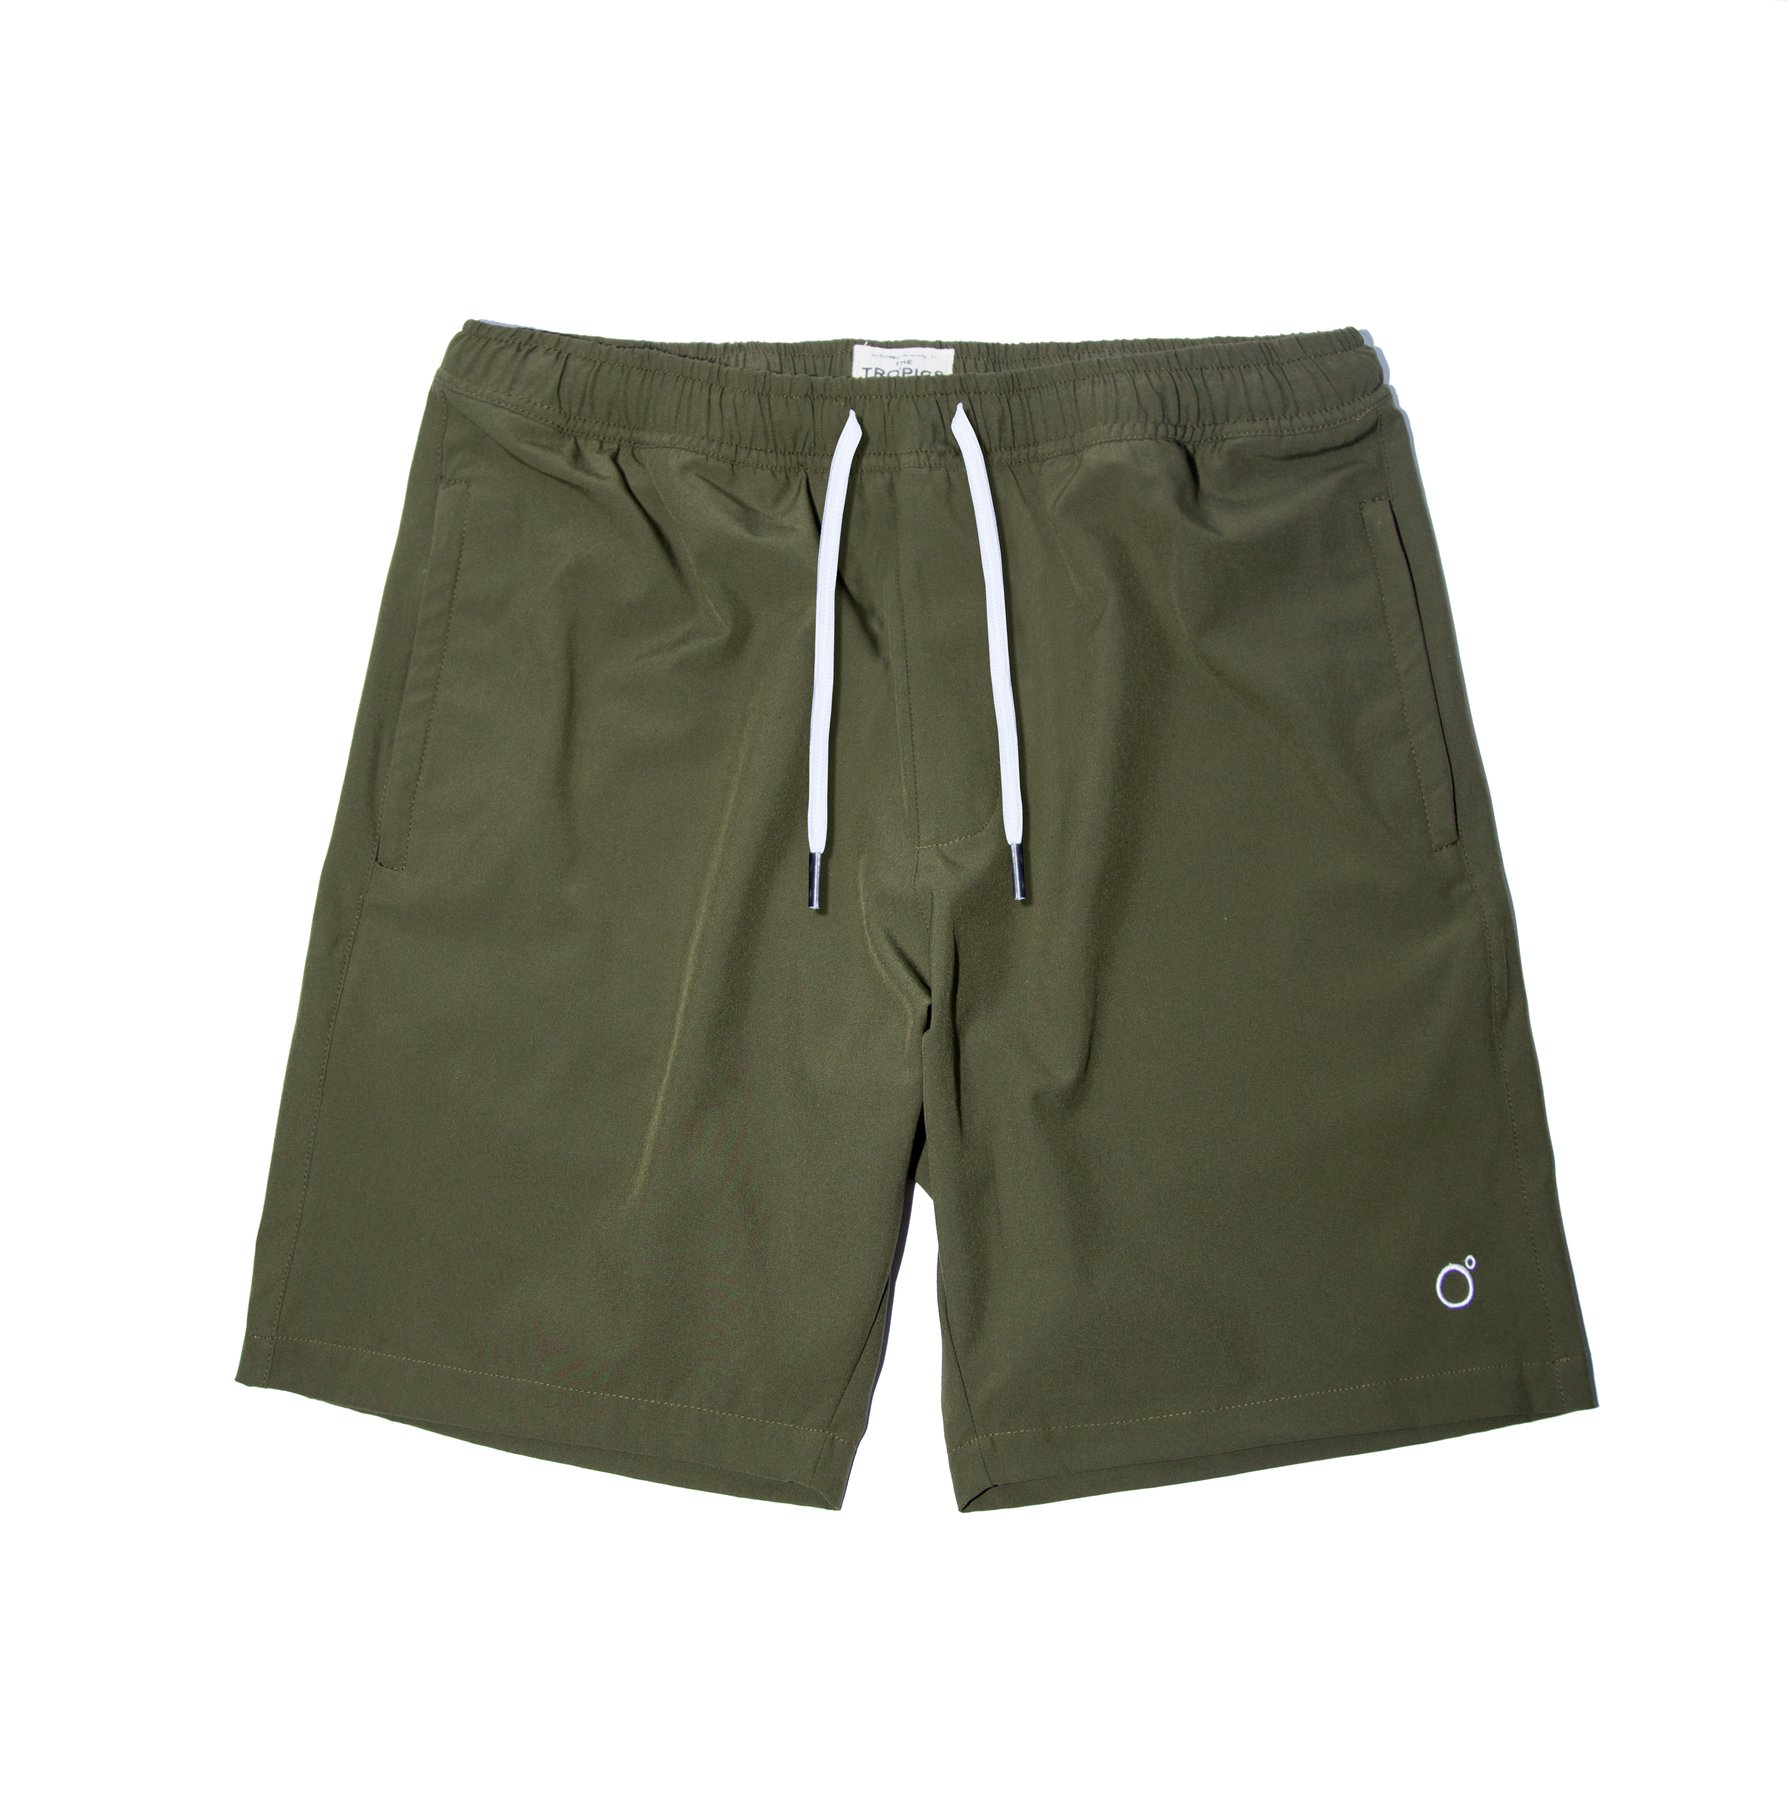 Standard Trunk - Hunter // $95